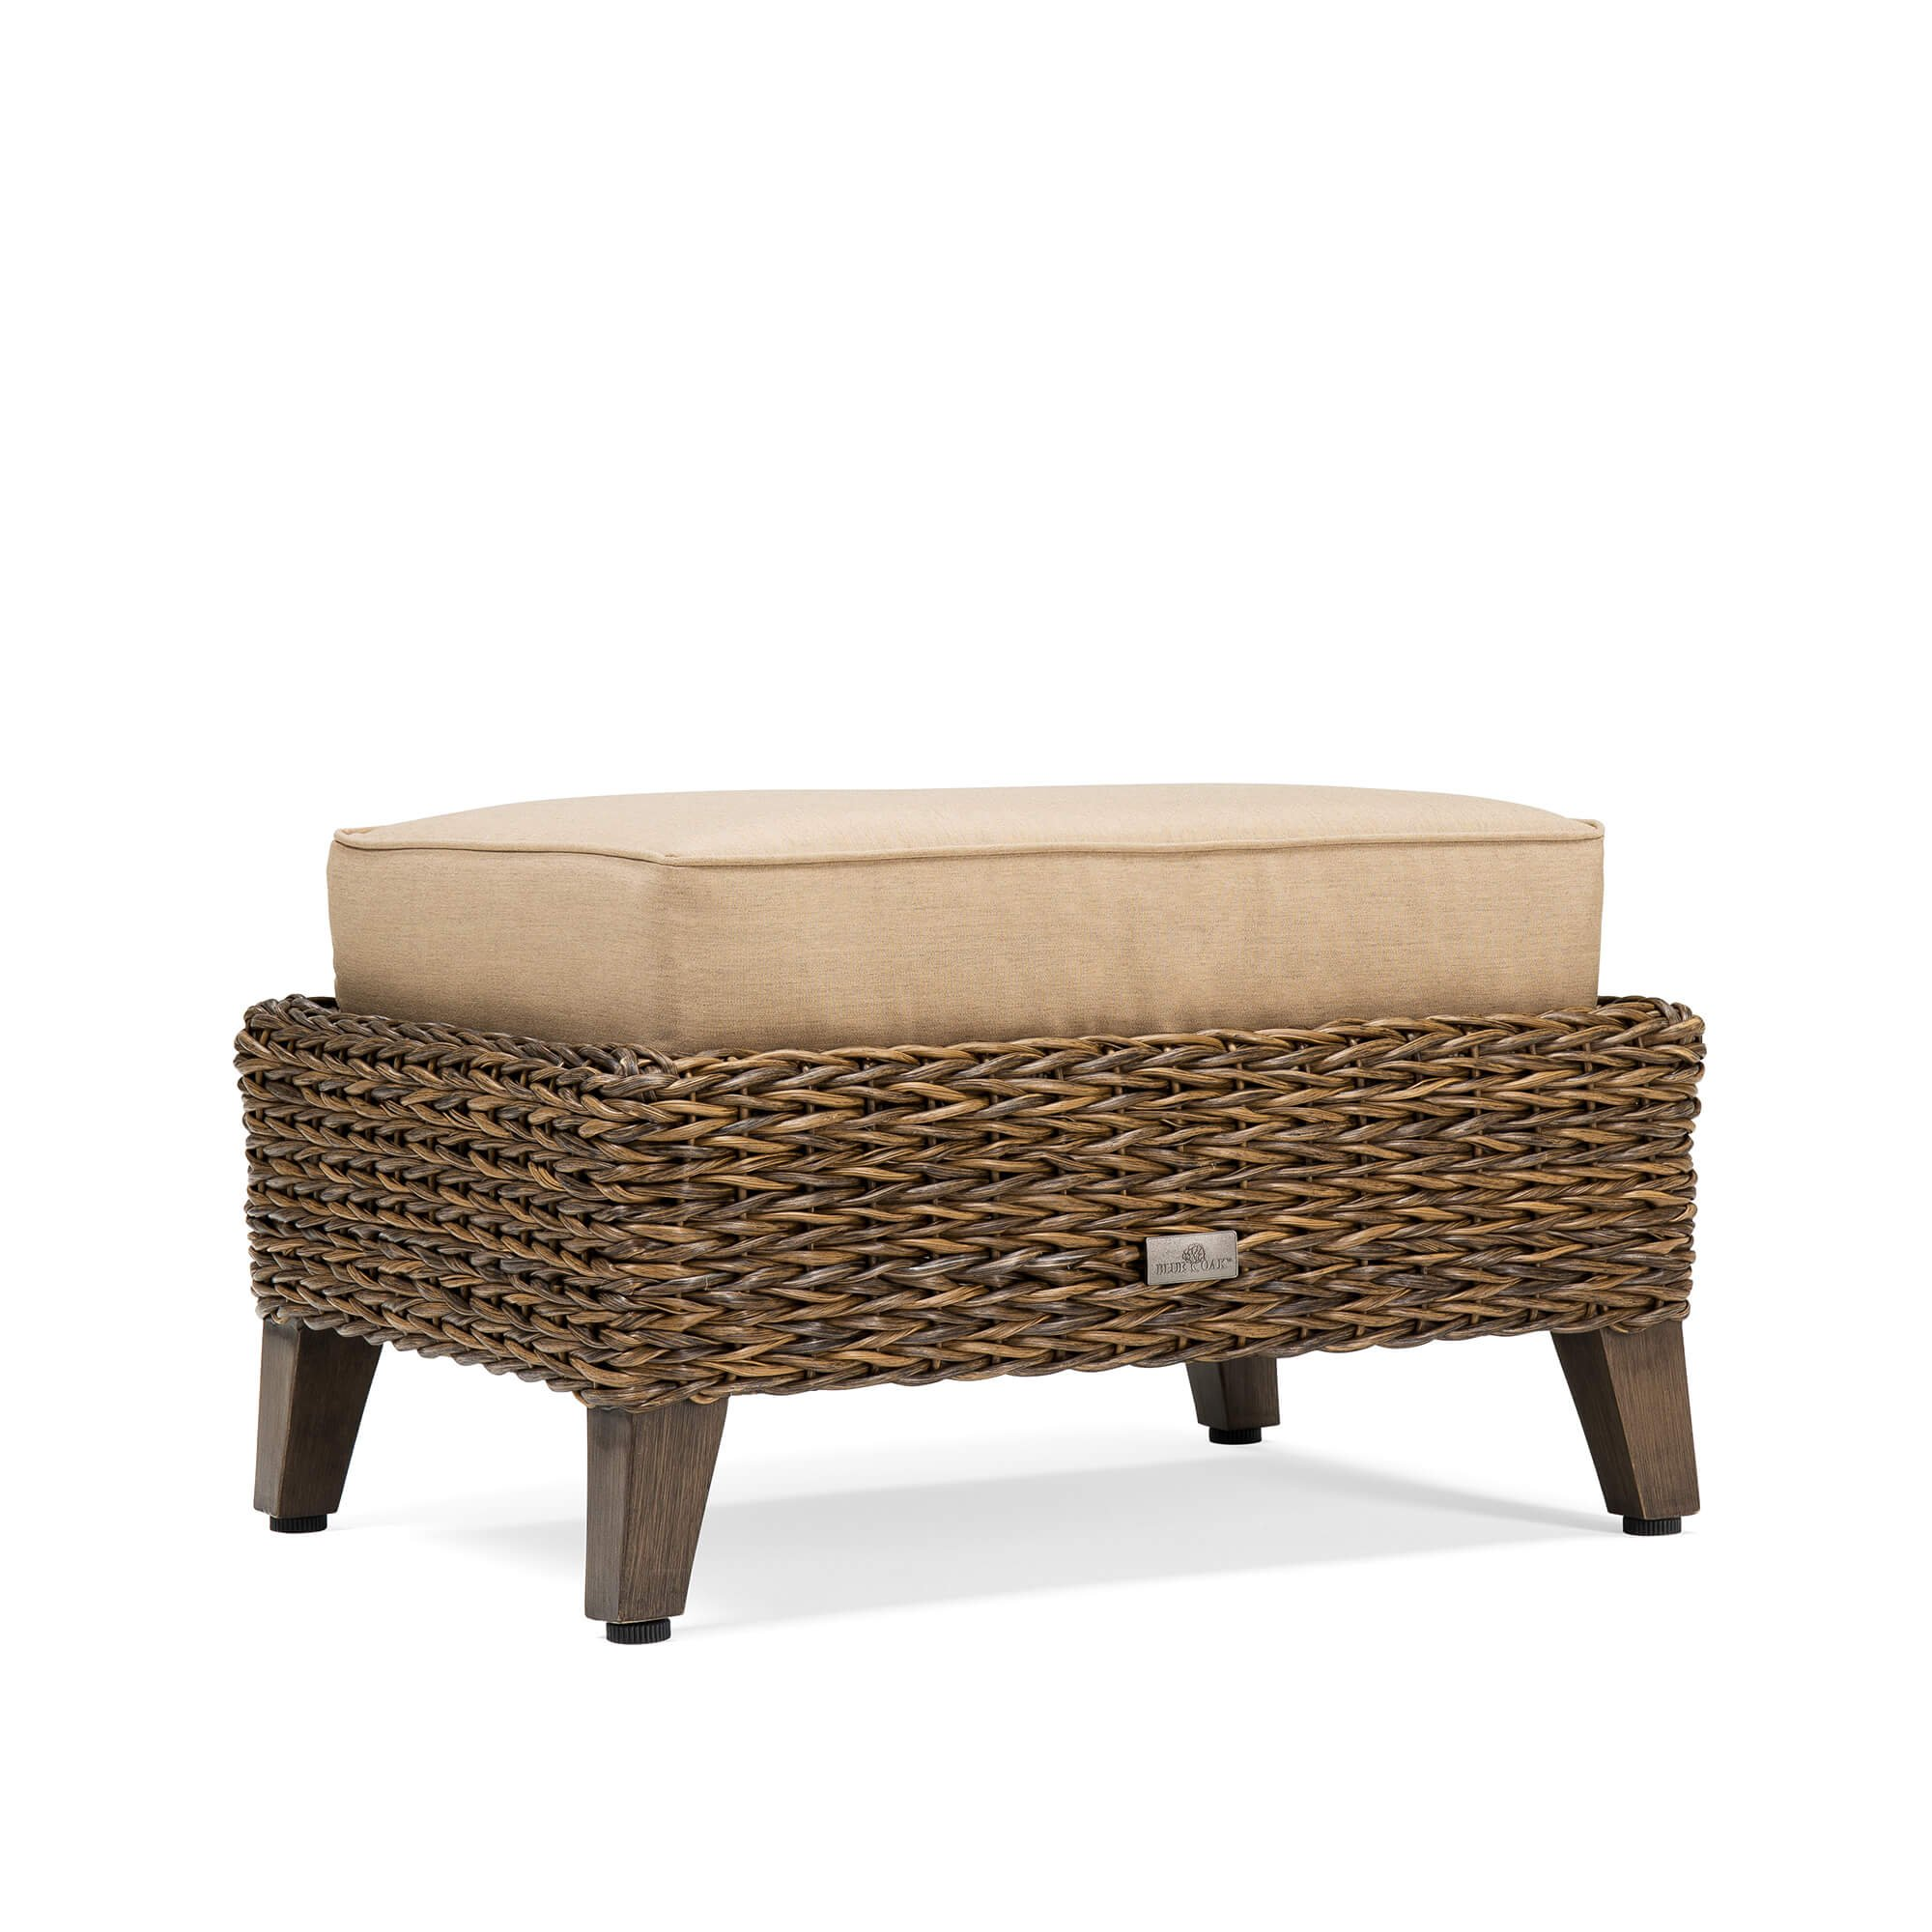 Blue Oak Outdoor Bahamas Patio Furniture Ottoman with Sunbrella Canvas Heather Beige Cushions